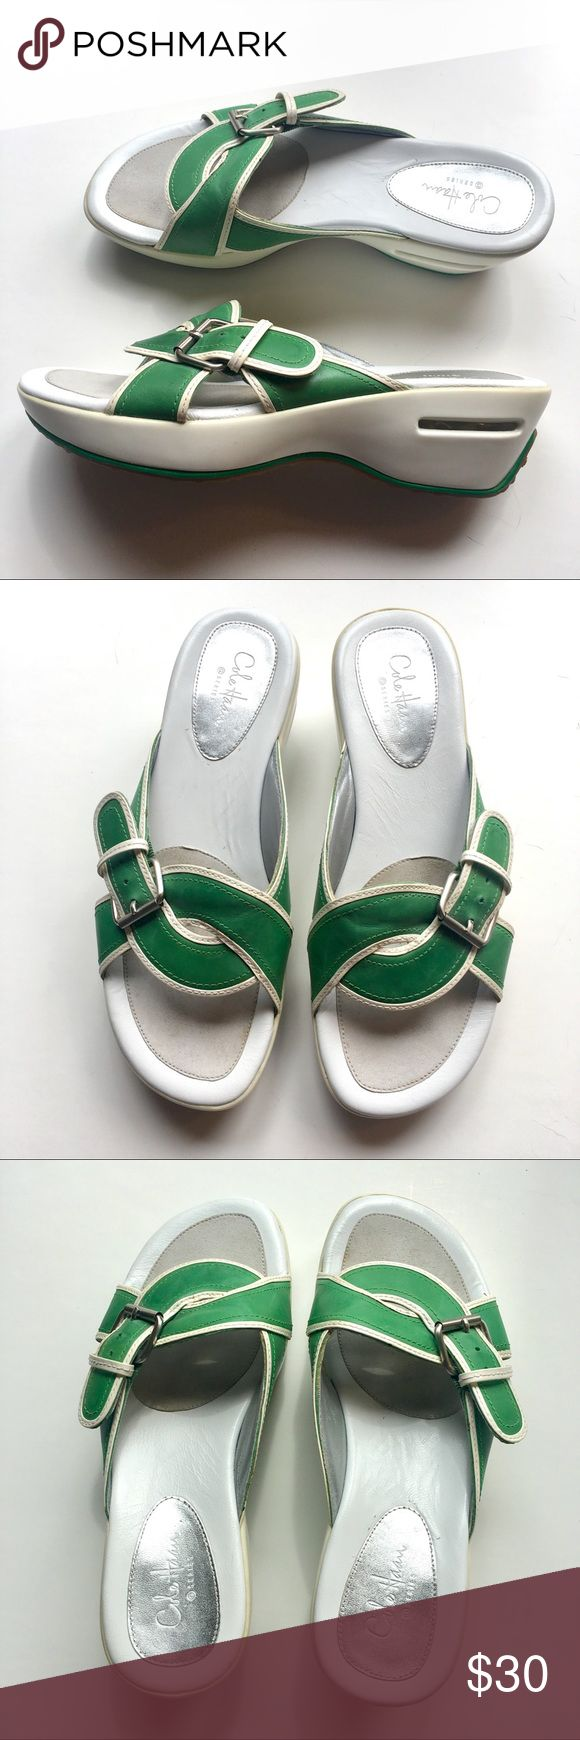 "Cole Haan G Series with Nike Air Sandals 2"" wedge. Spring green with white trim criss-cross leather strap with buckle. Soft cushioned foot bed with Nike Air shock technology in heel. Rubber sole. Worn a couple times. Very good used condition. Cole Haan Shoes Sandals"